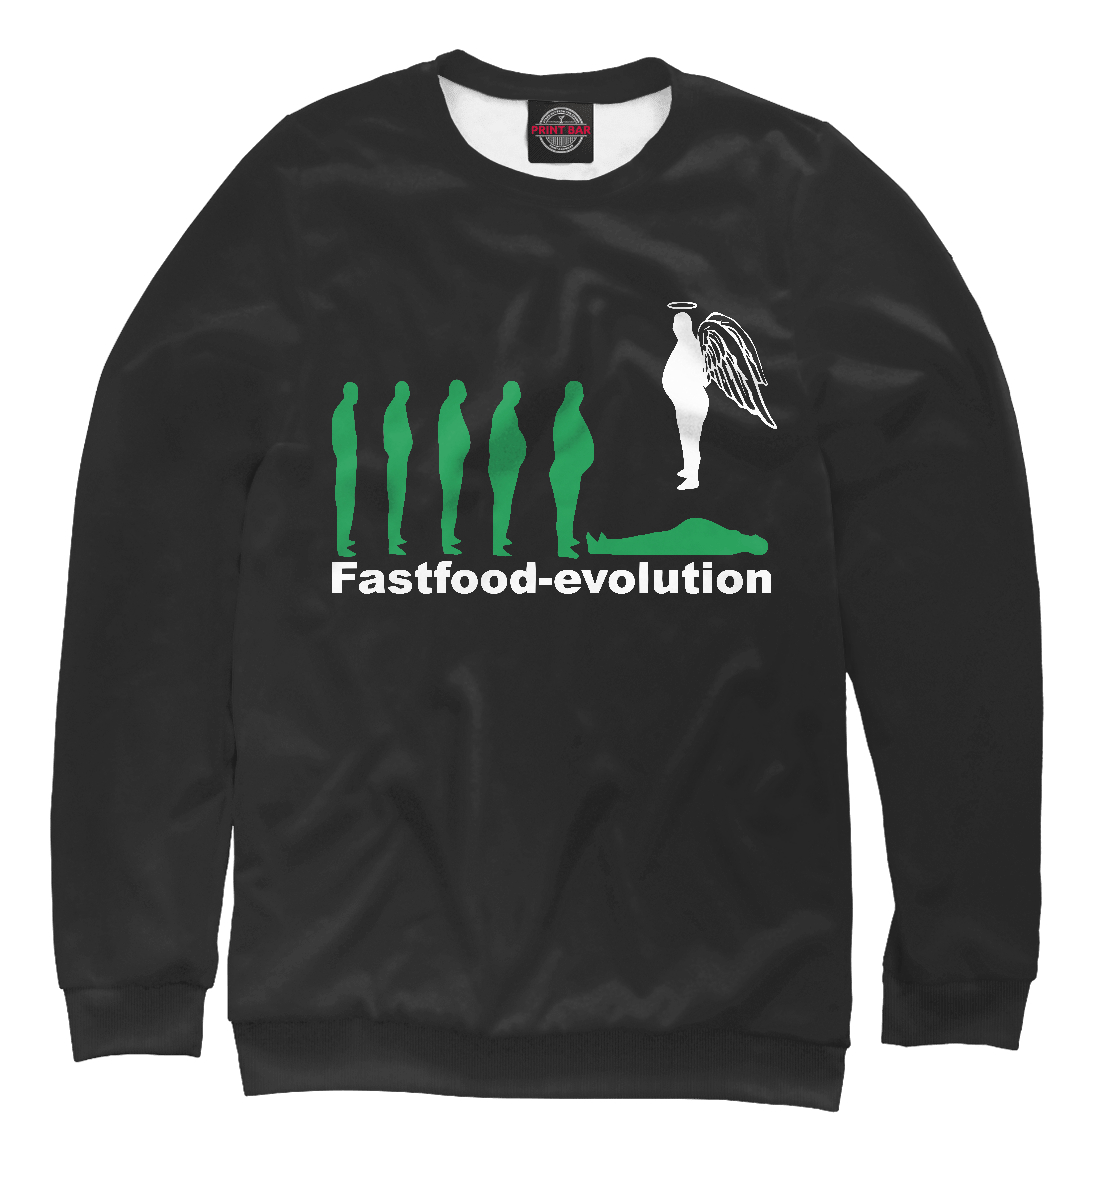 Купить Fastfood Evolution, Printbar, Свитшоты, EDA-541617-swi-1